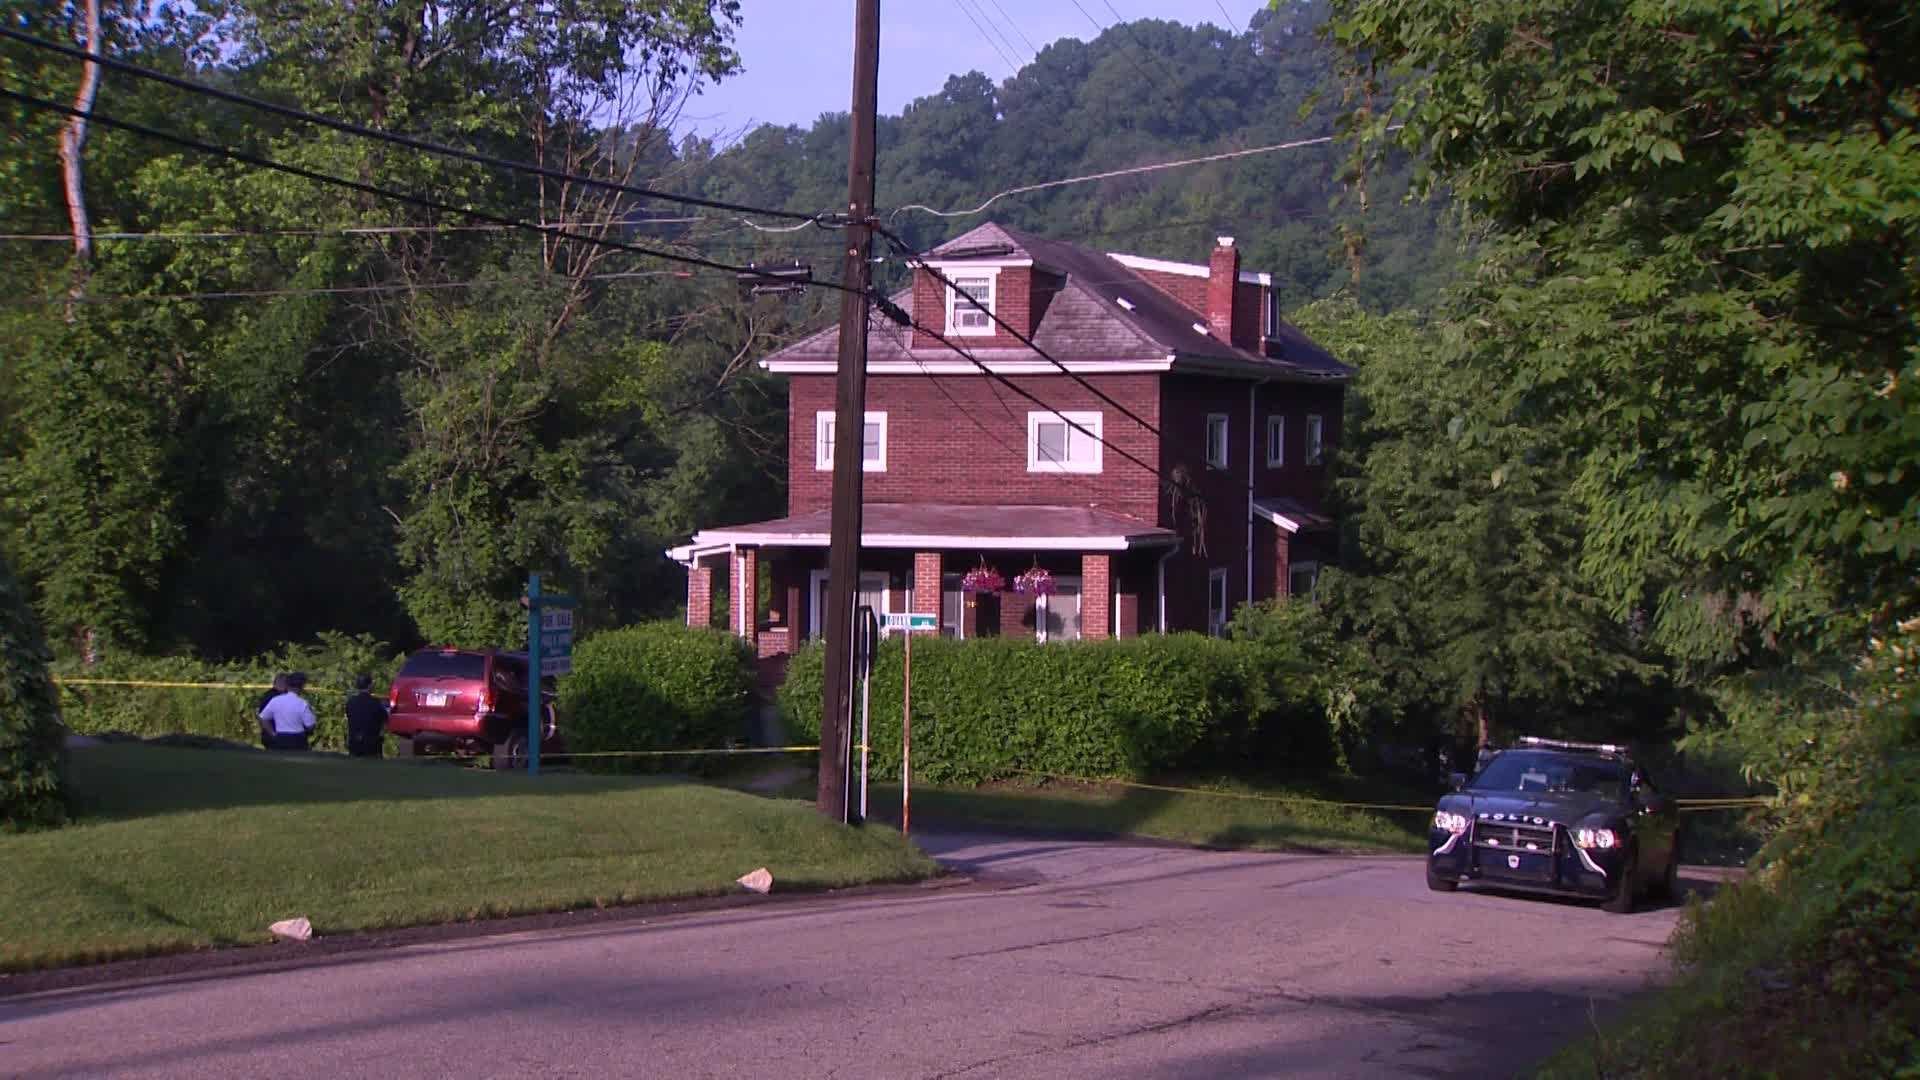 Police activity in Shaler Township